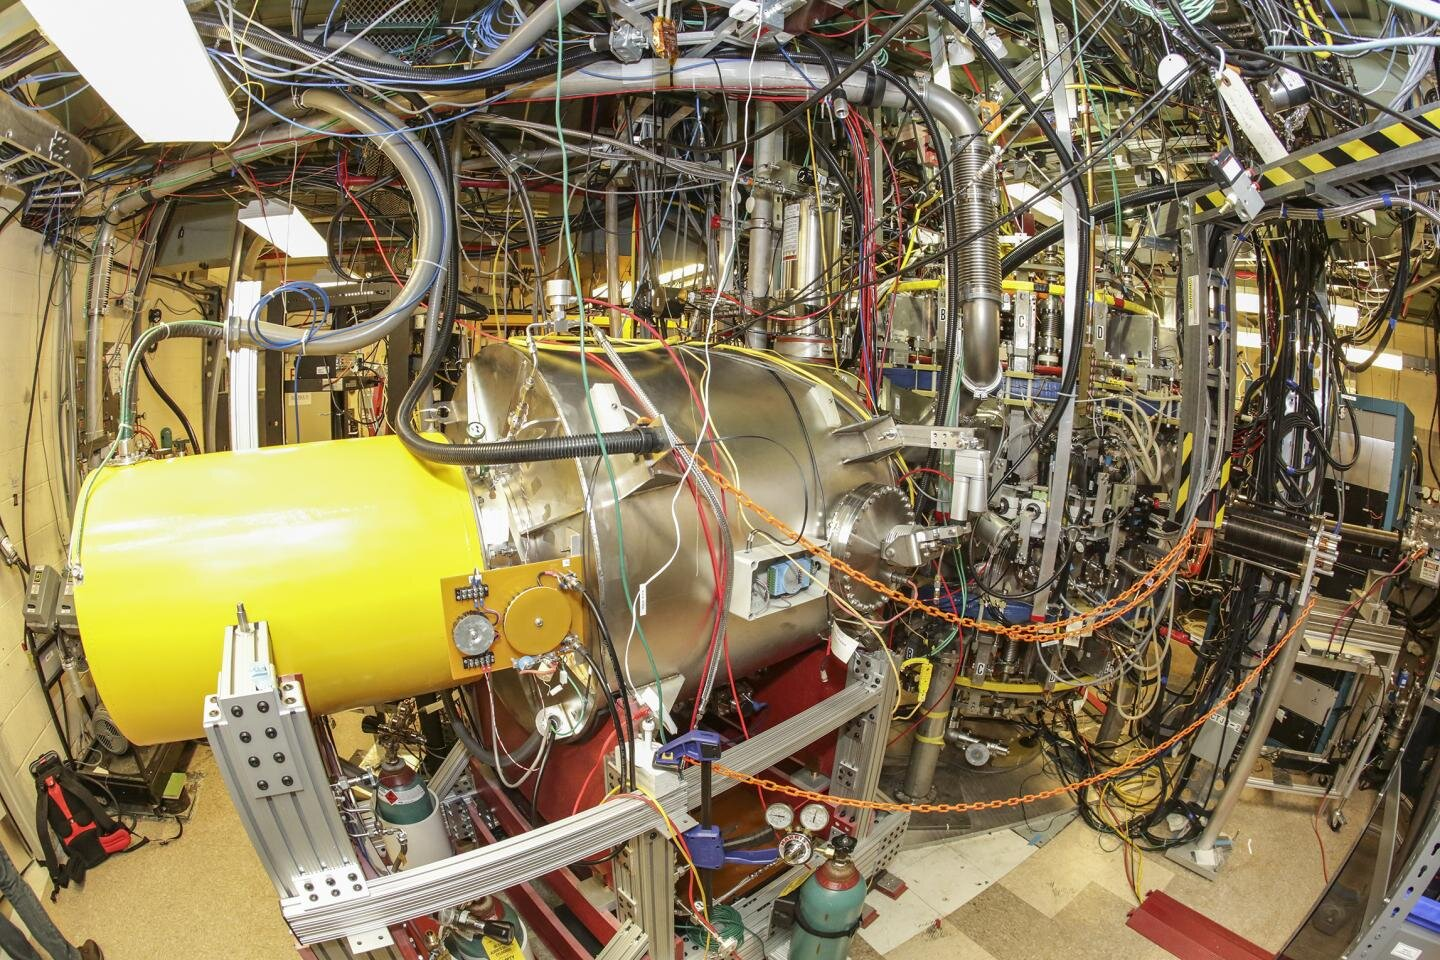 Machine set to see if lithium can help bring fusion to Earth - Phys.Org